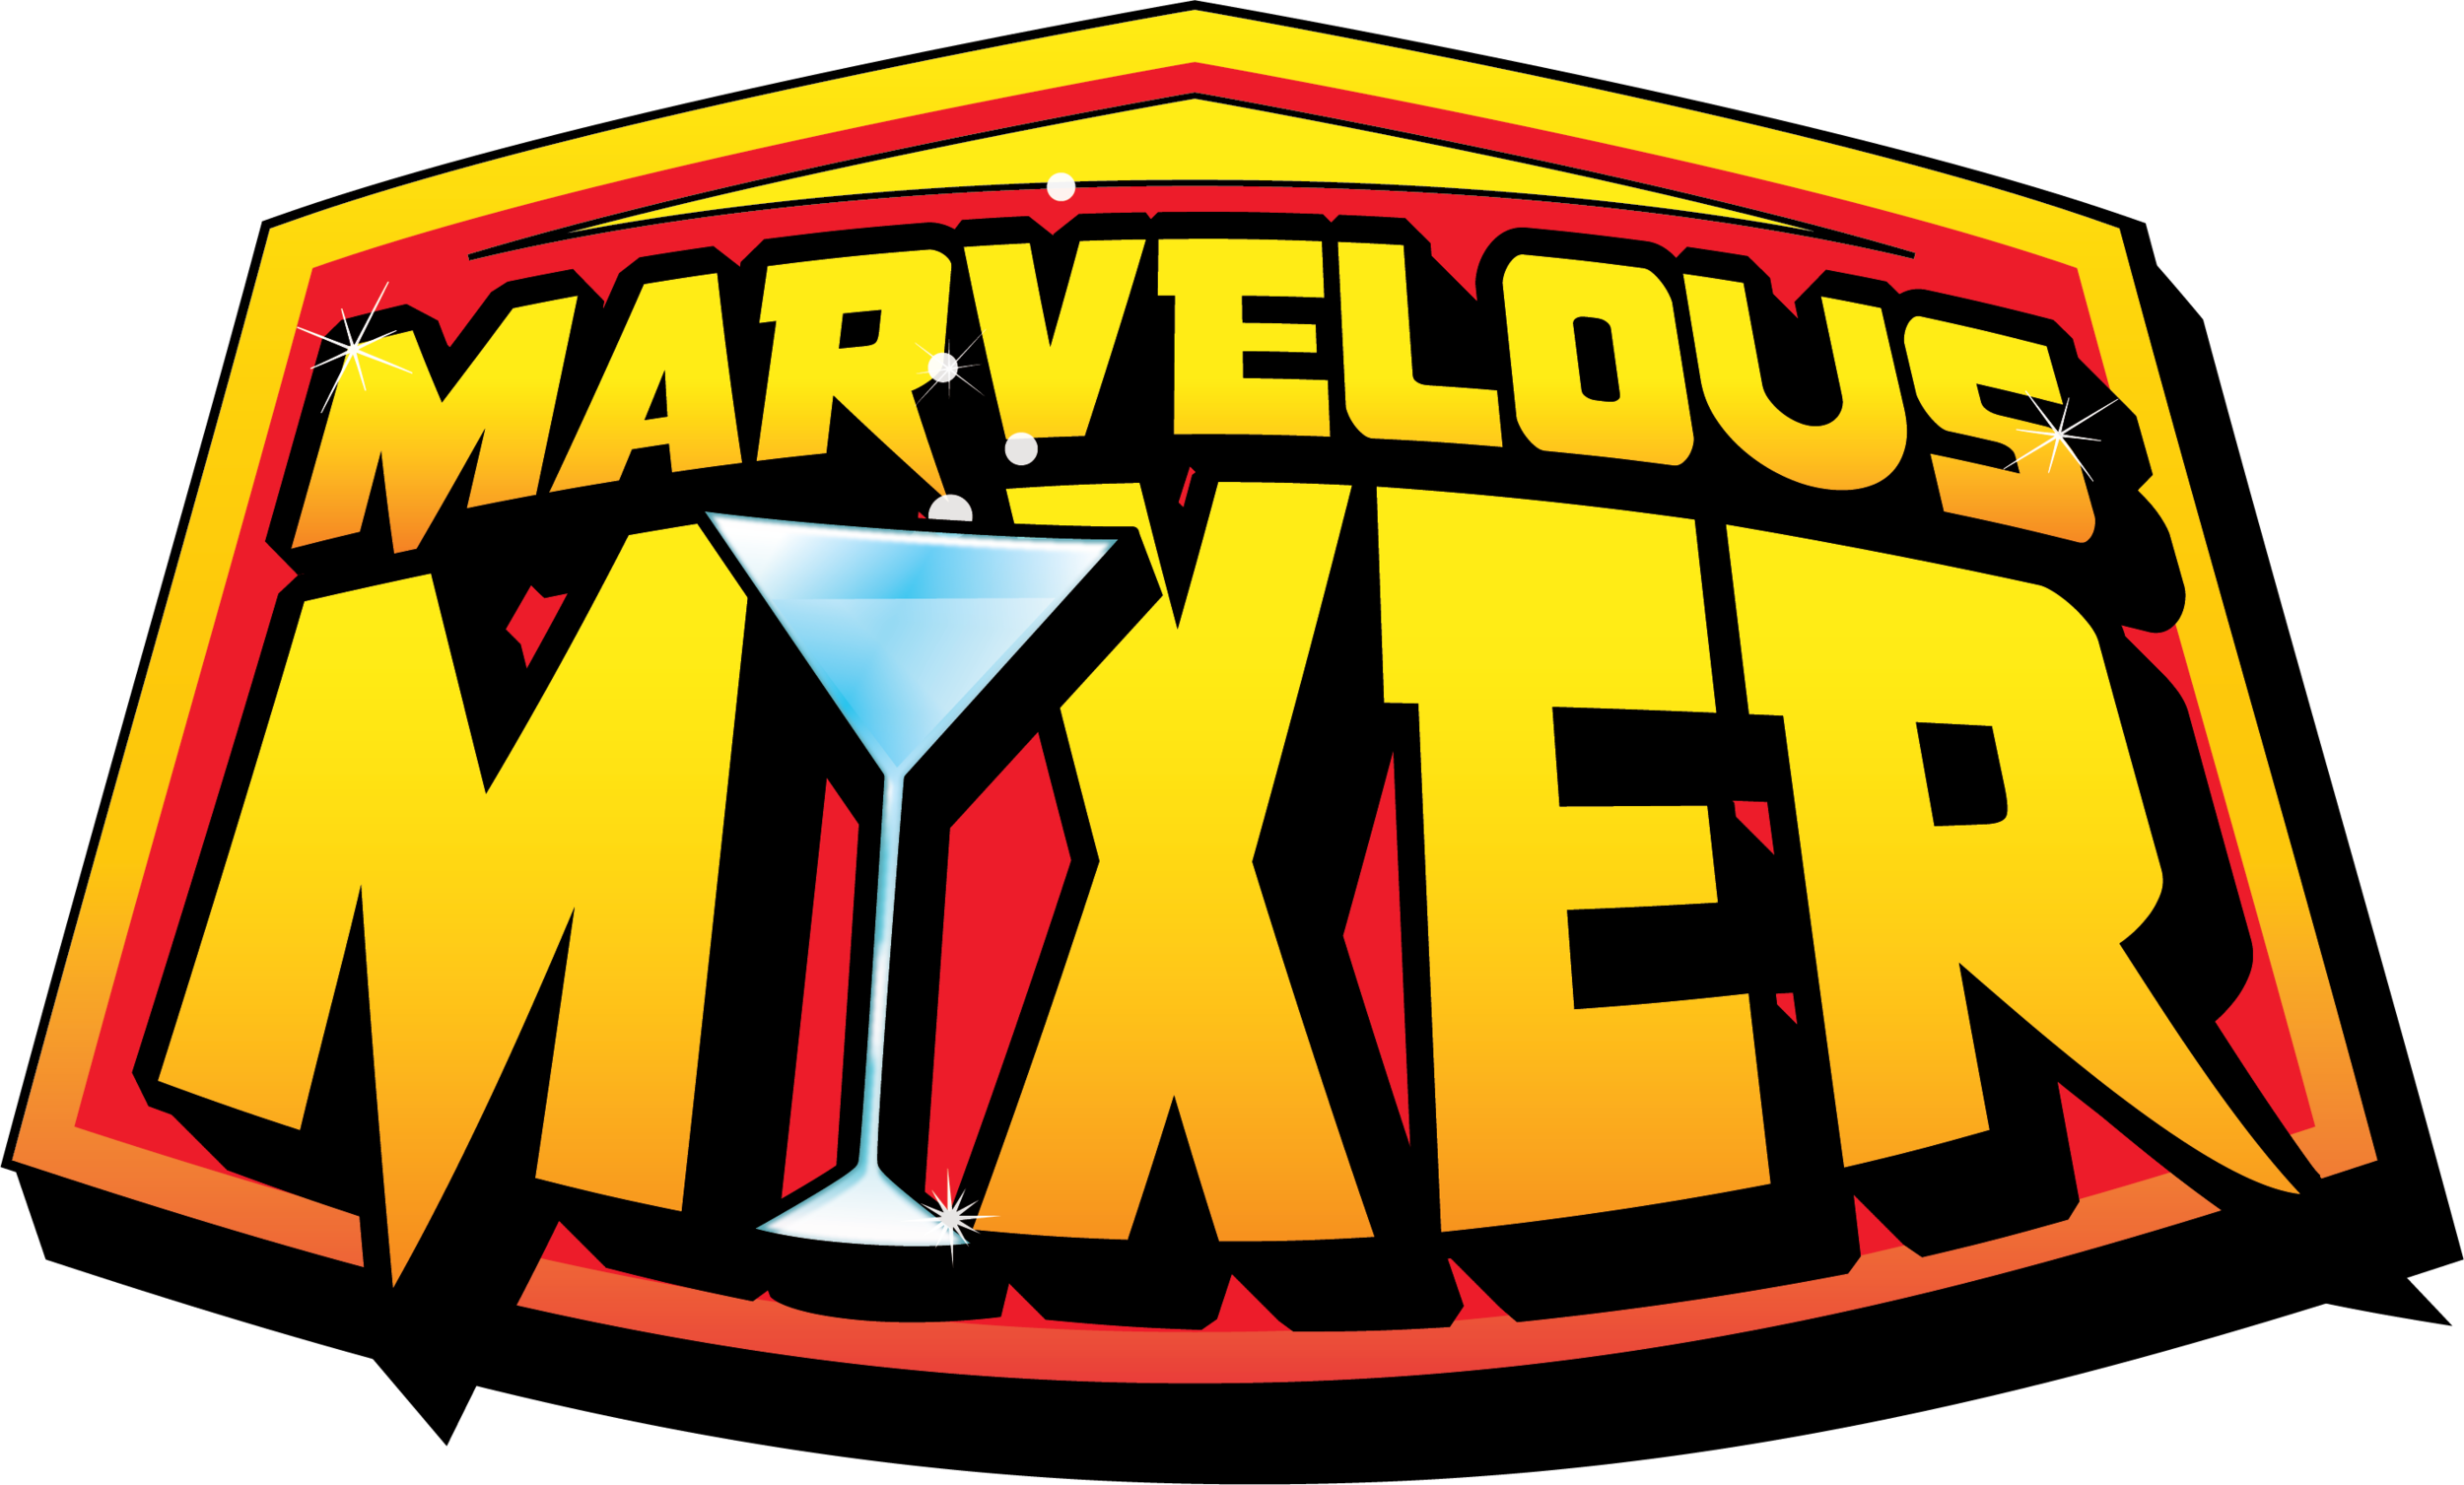 MarvelousMixerLogo_Final.png